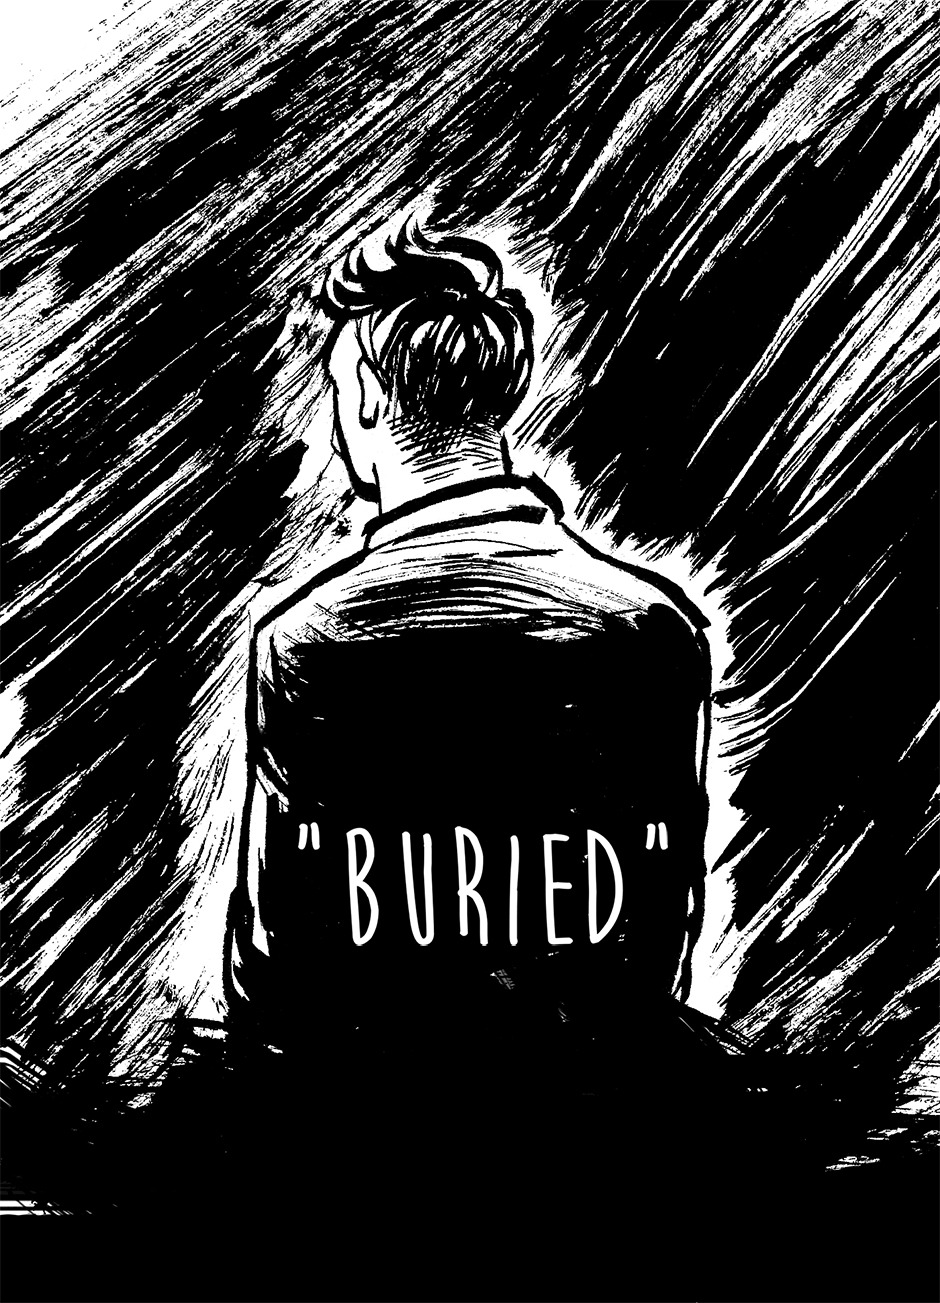 Chapter 2: Buried